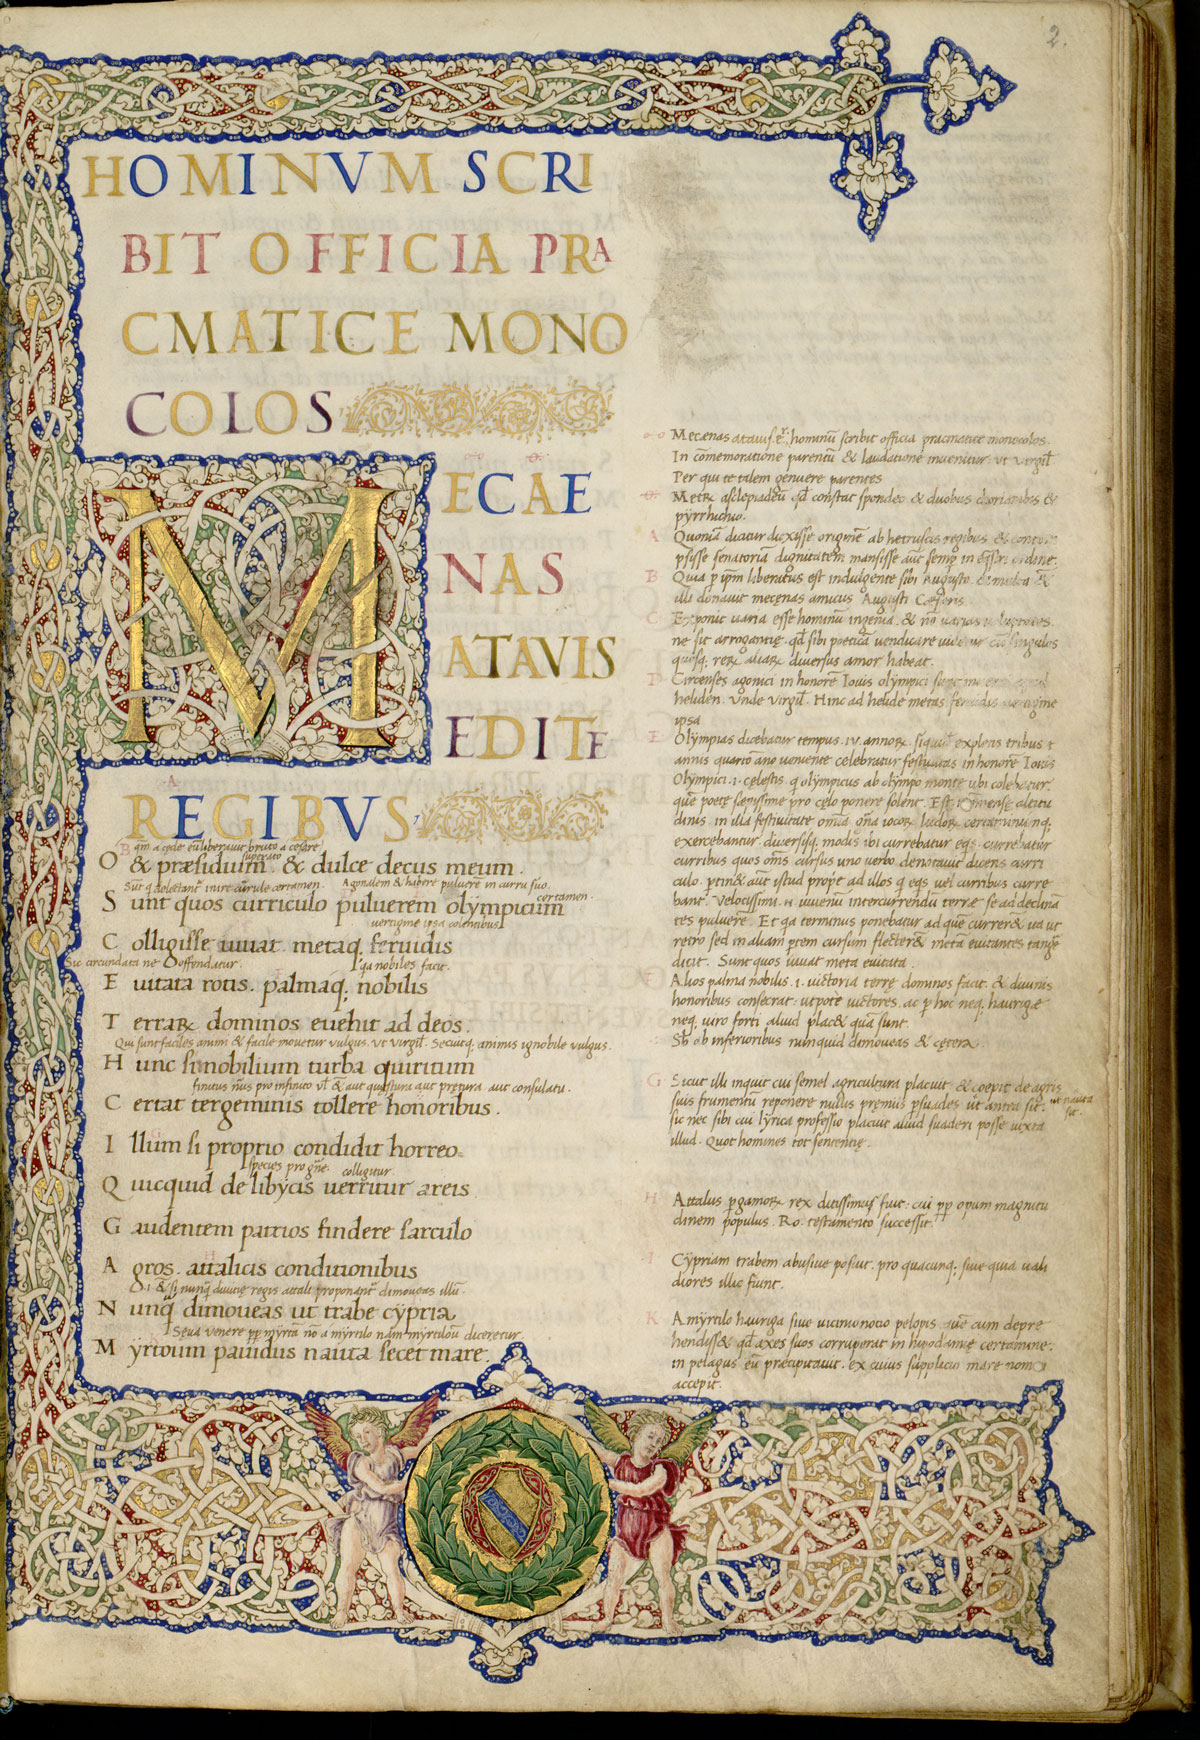 Horace, Opera cum commentario Acronis, Italian, 15th century Latin humanist script, illuminated manuscript on parchment